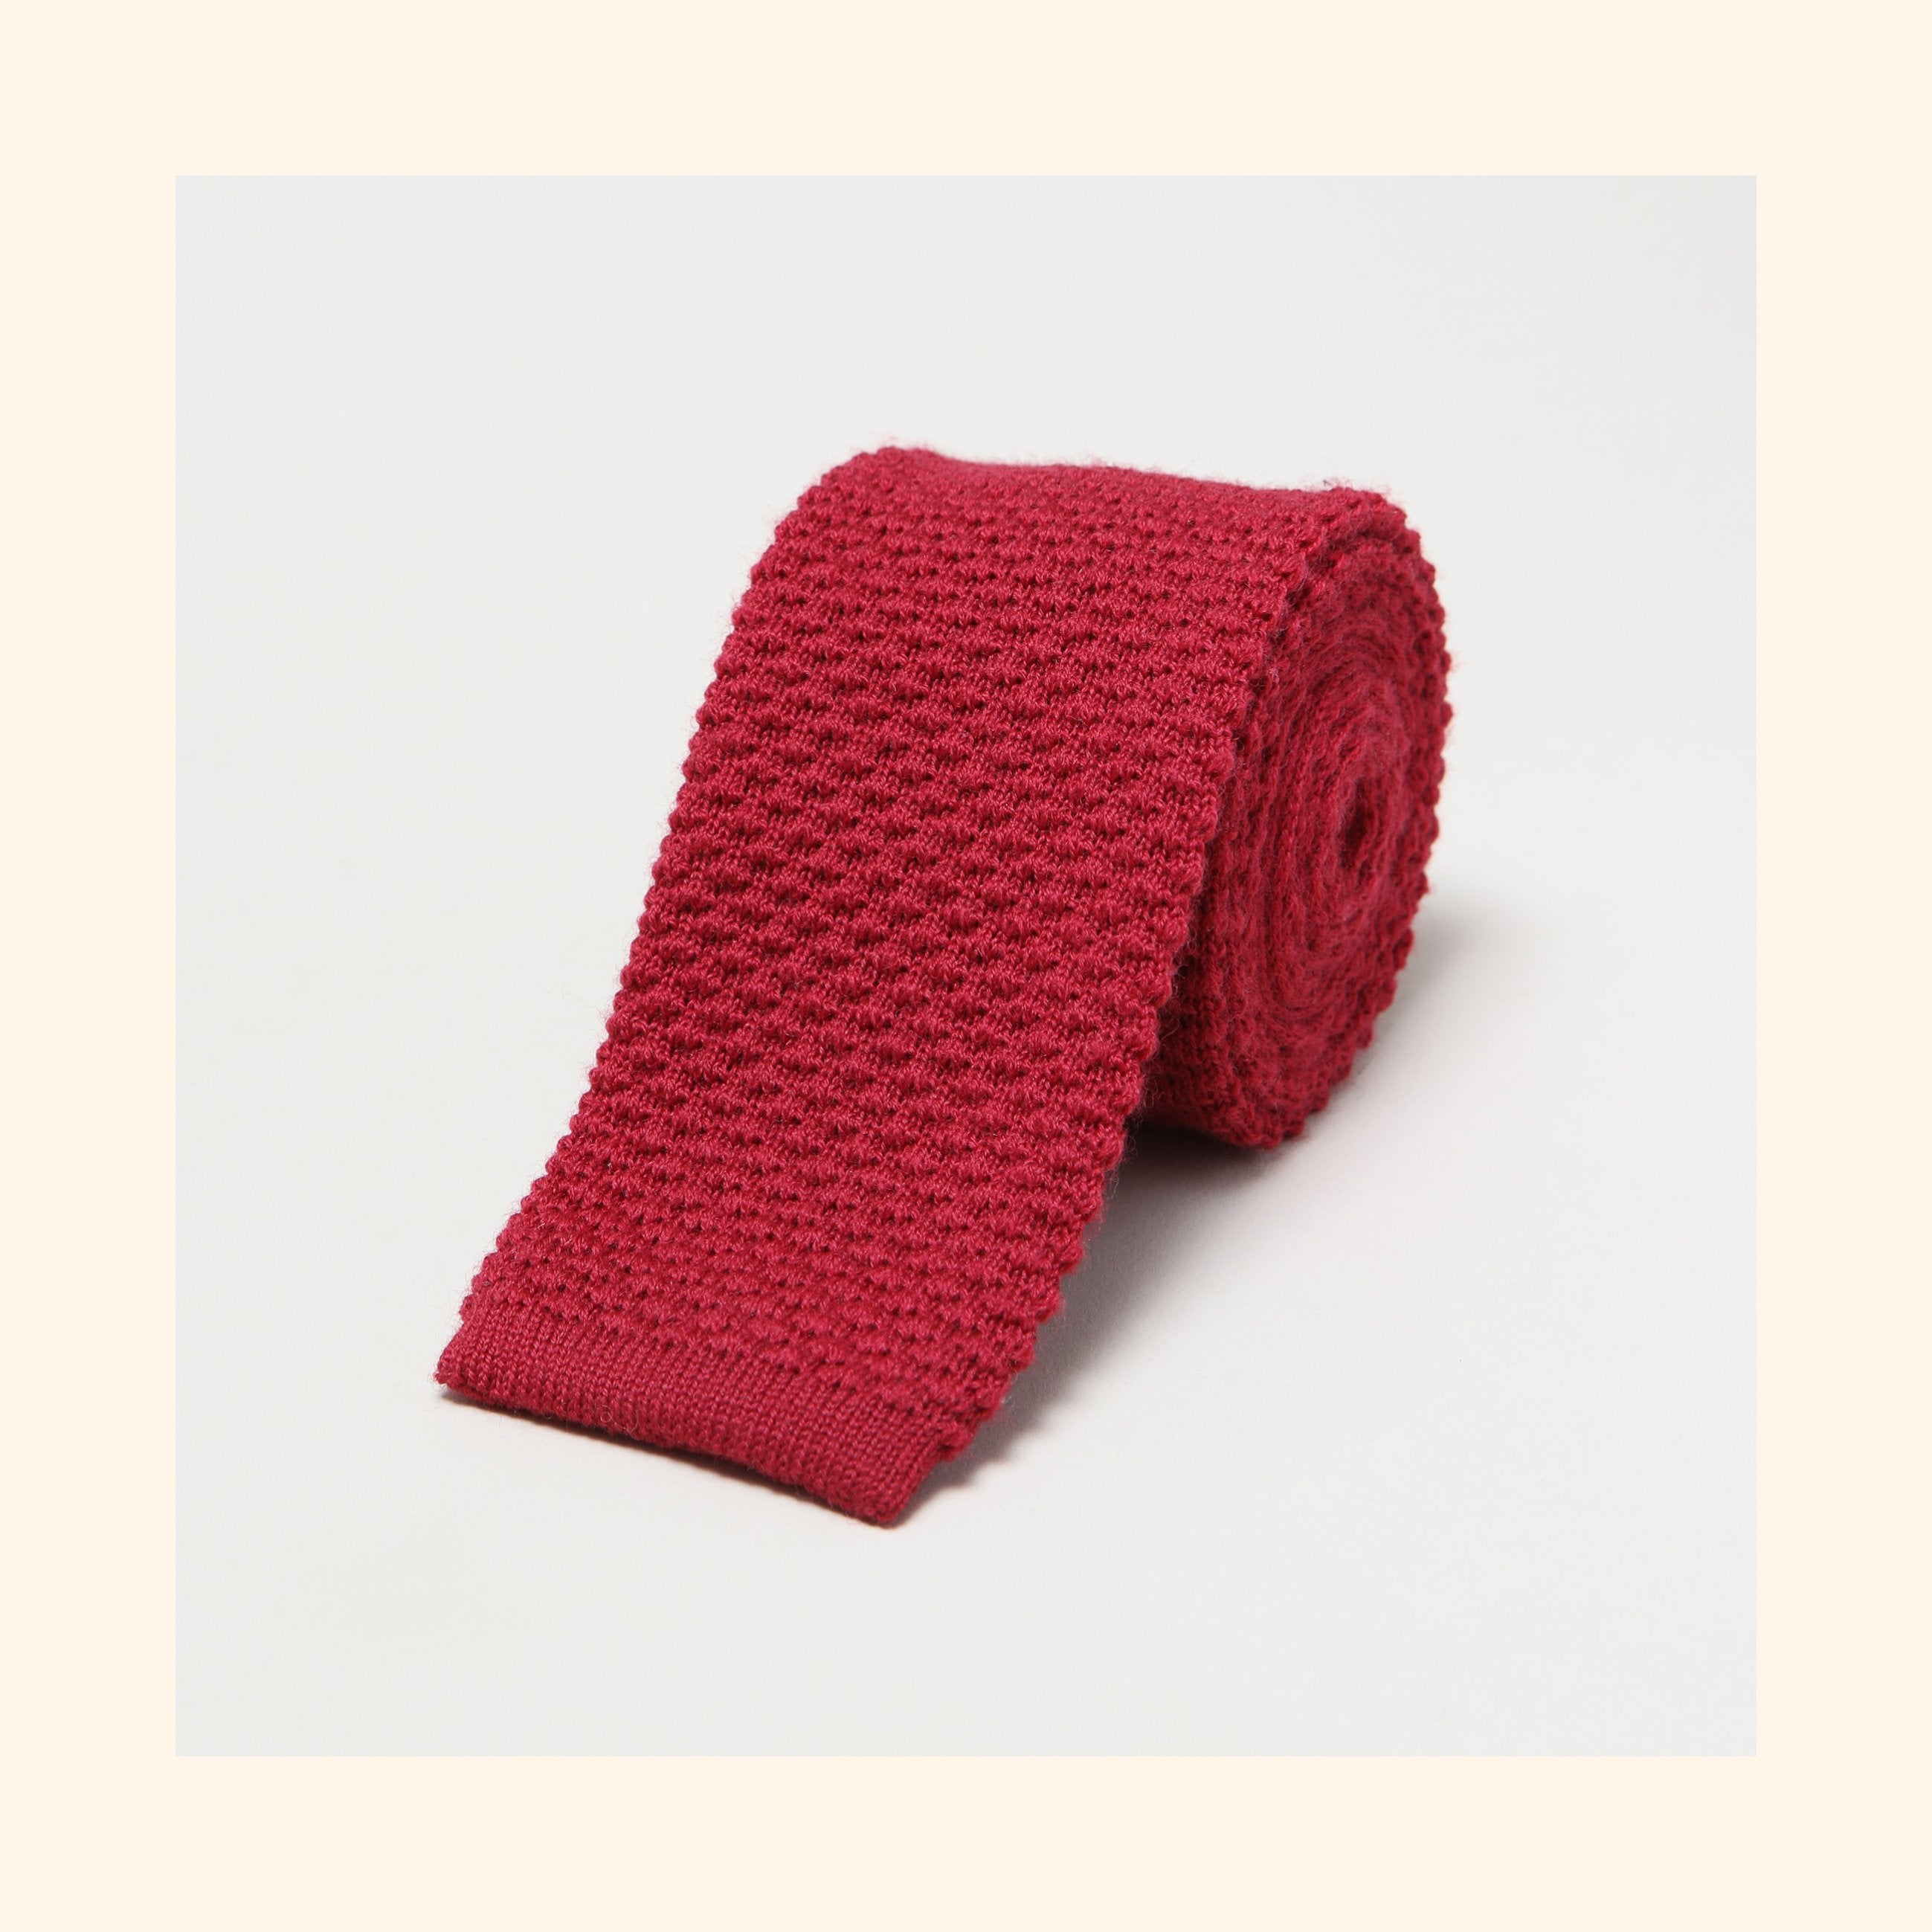 № 098 - Burgundy Knitted Wool Tie